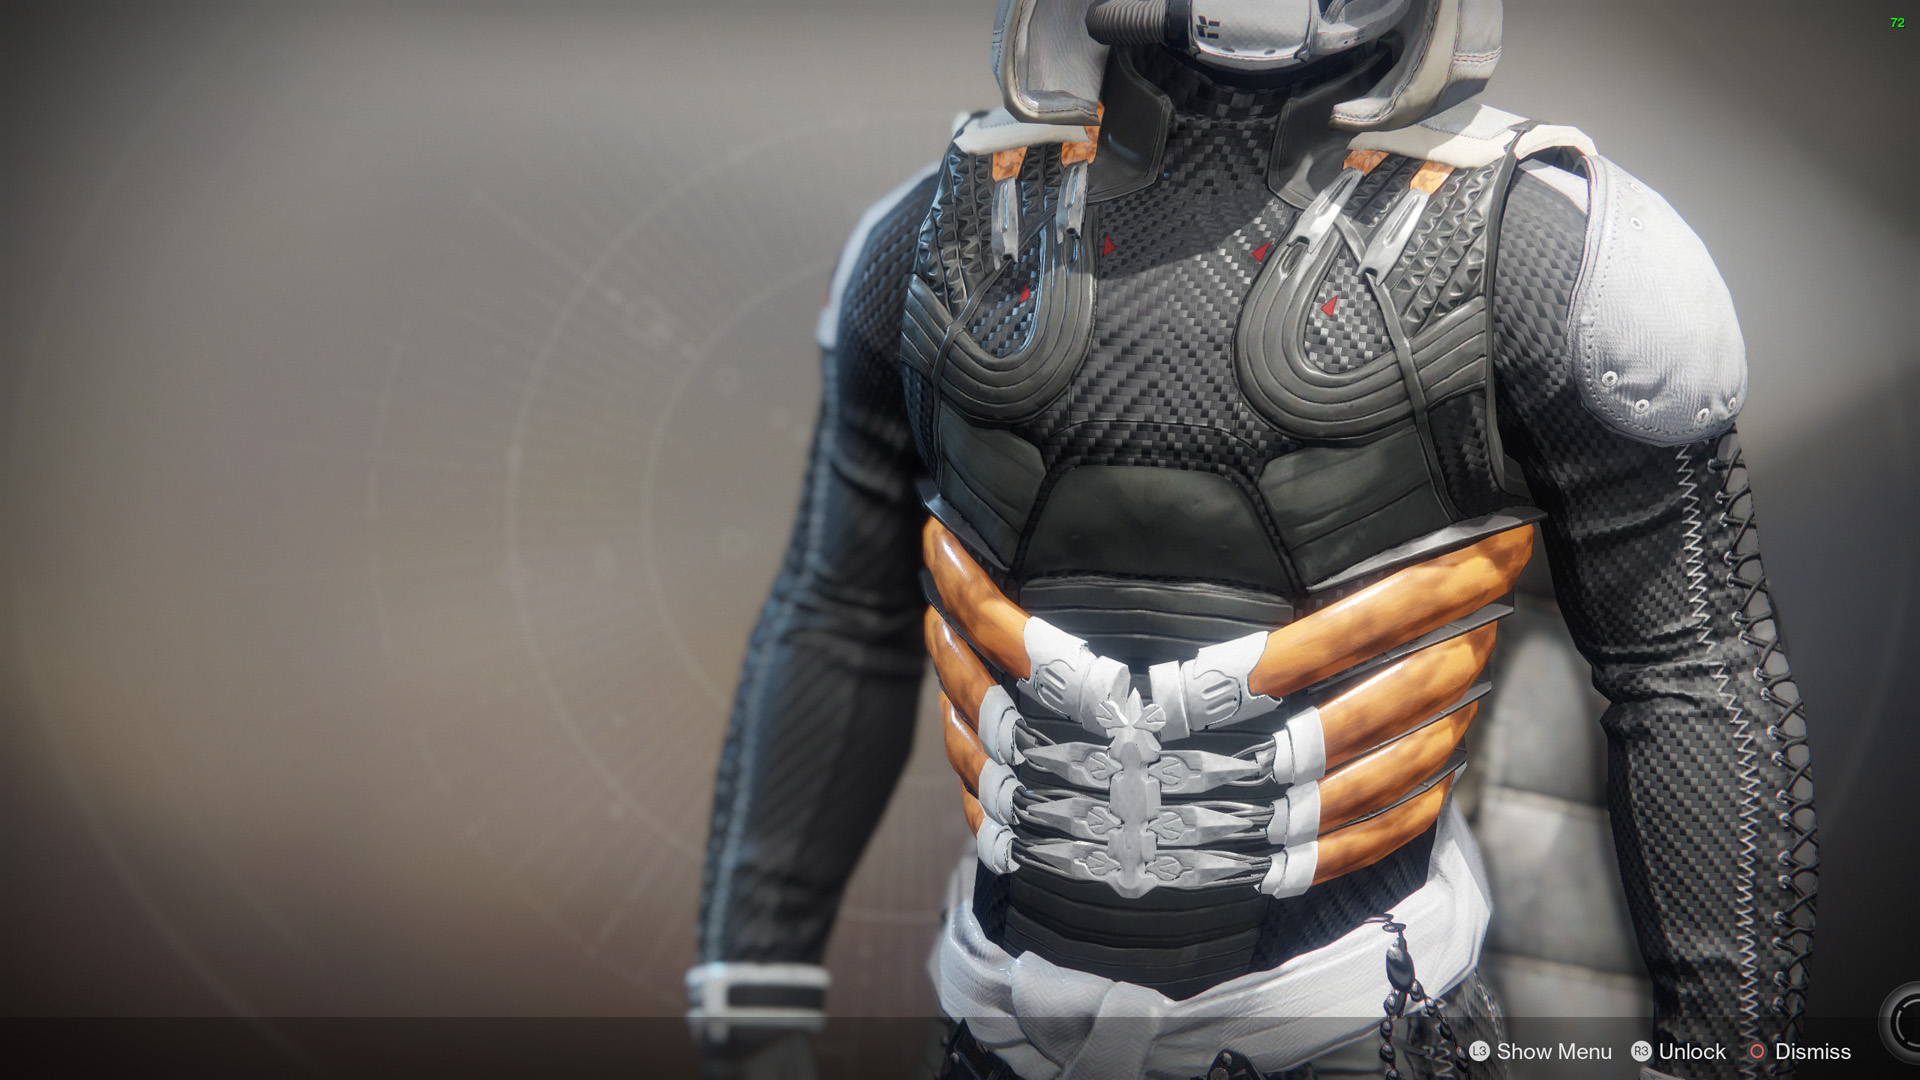 the exotic armor of - photo #37